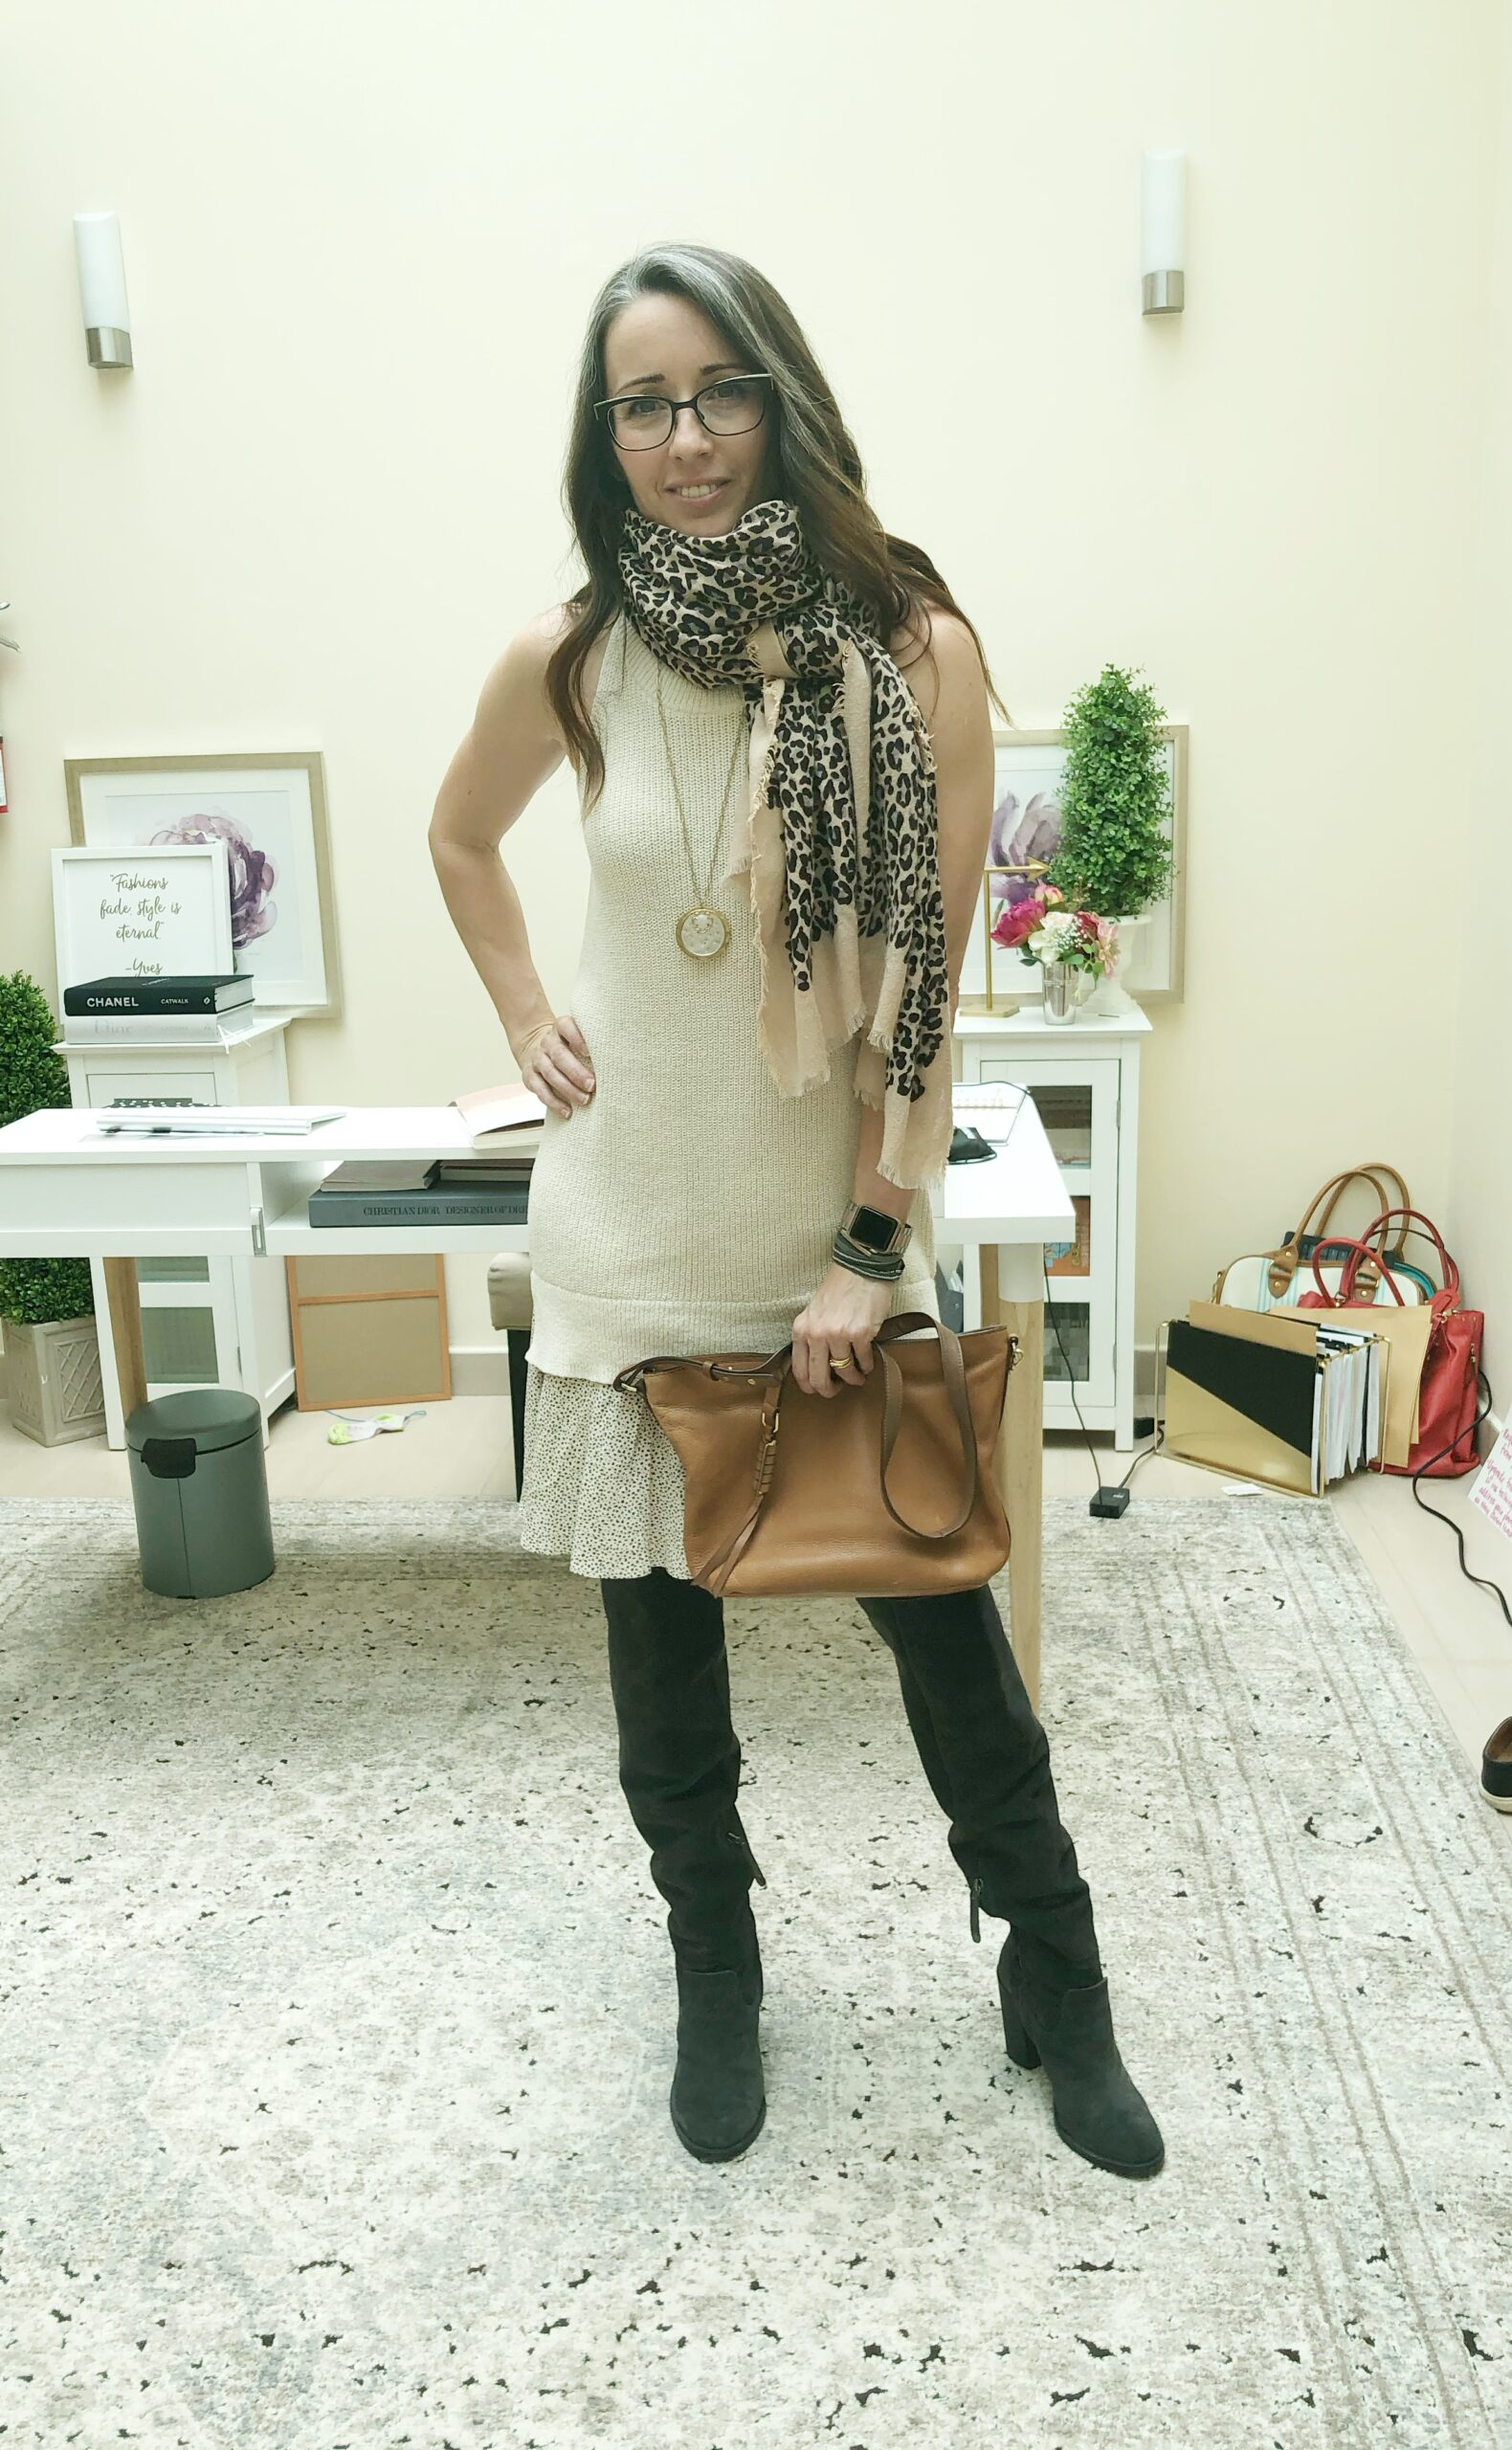 method39, style advice, style advisor, find your style, wardrobe, versatility, finish the look, accessorize, casual, everyday style, dressed up, four ways, bonus style, sweater dress, add personality